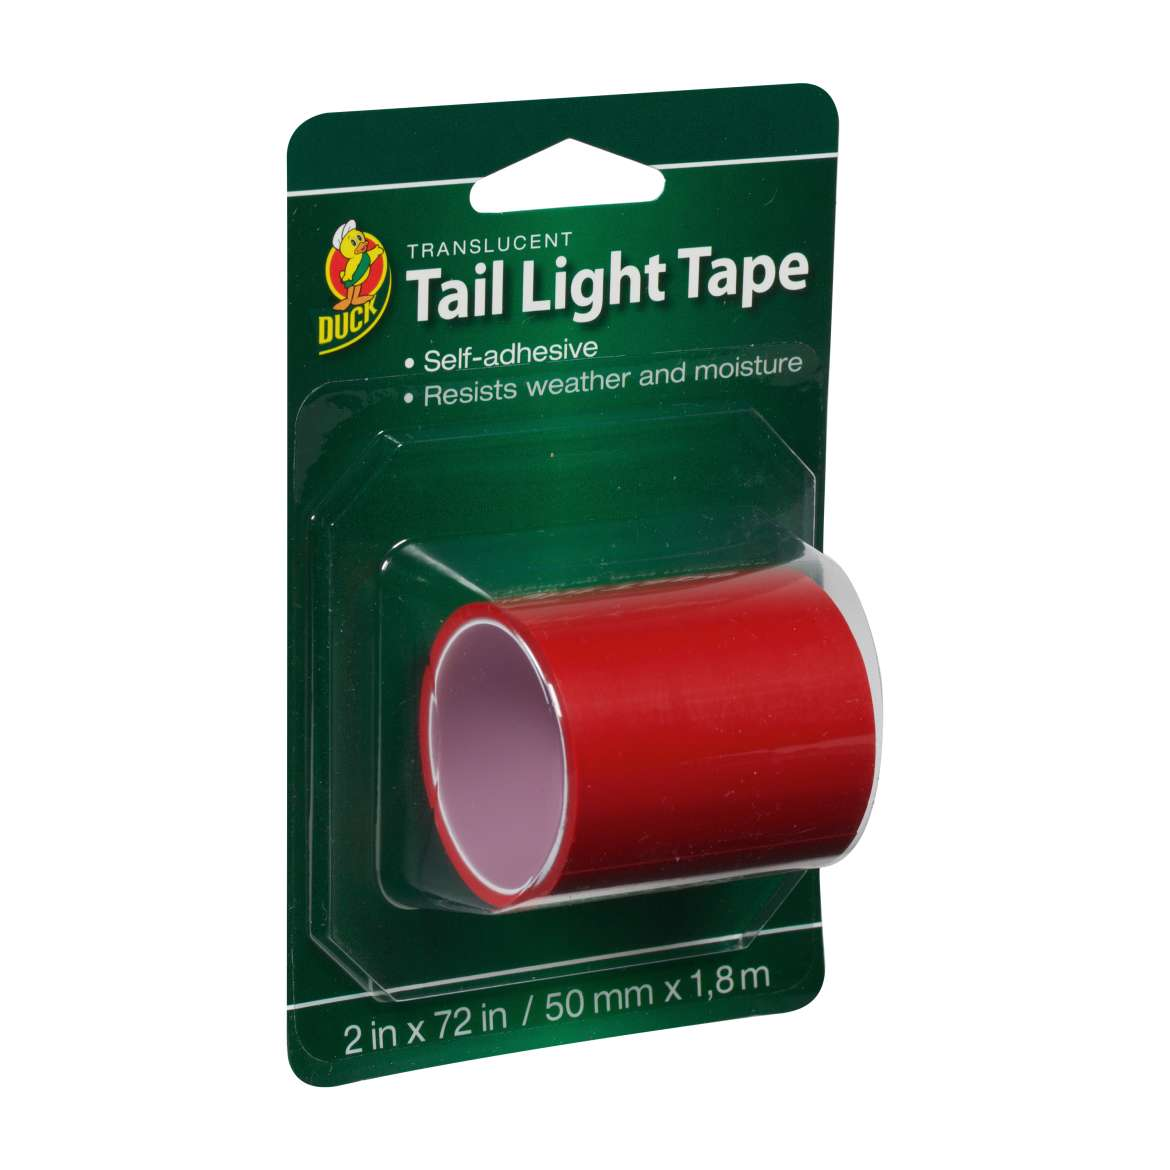 Tail Light Tape Image